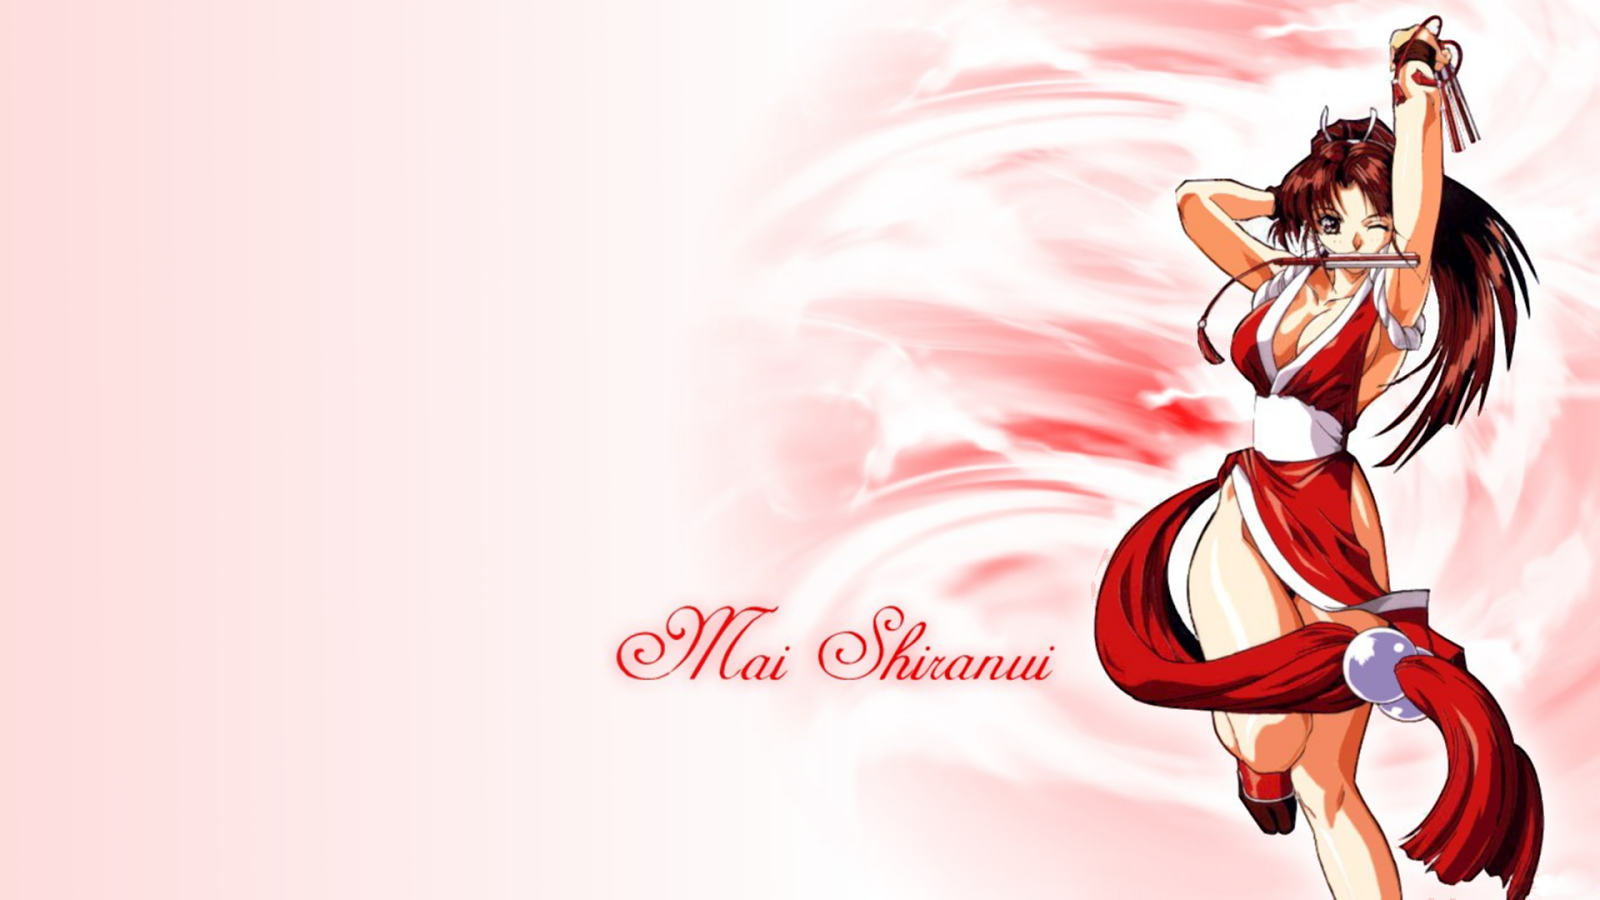 Mai Shiranui Wallpapers King Of Fighters Mai Shiranui Hd